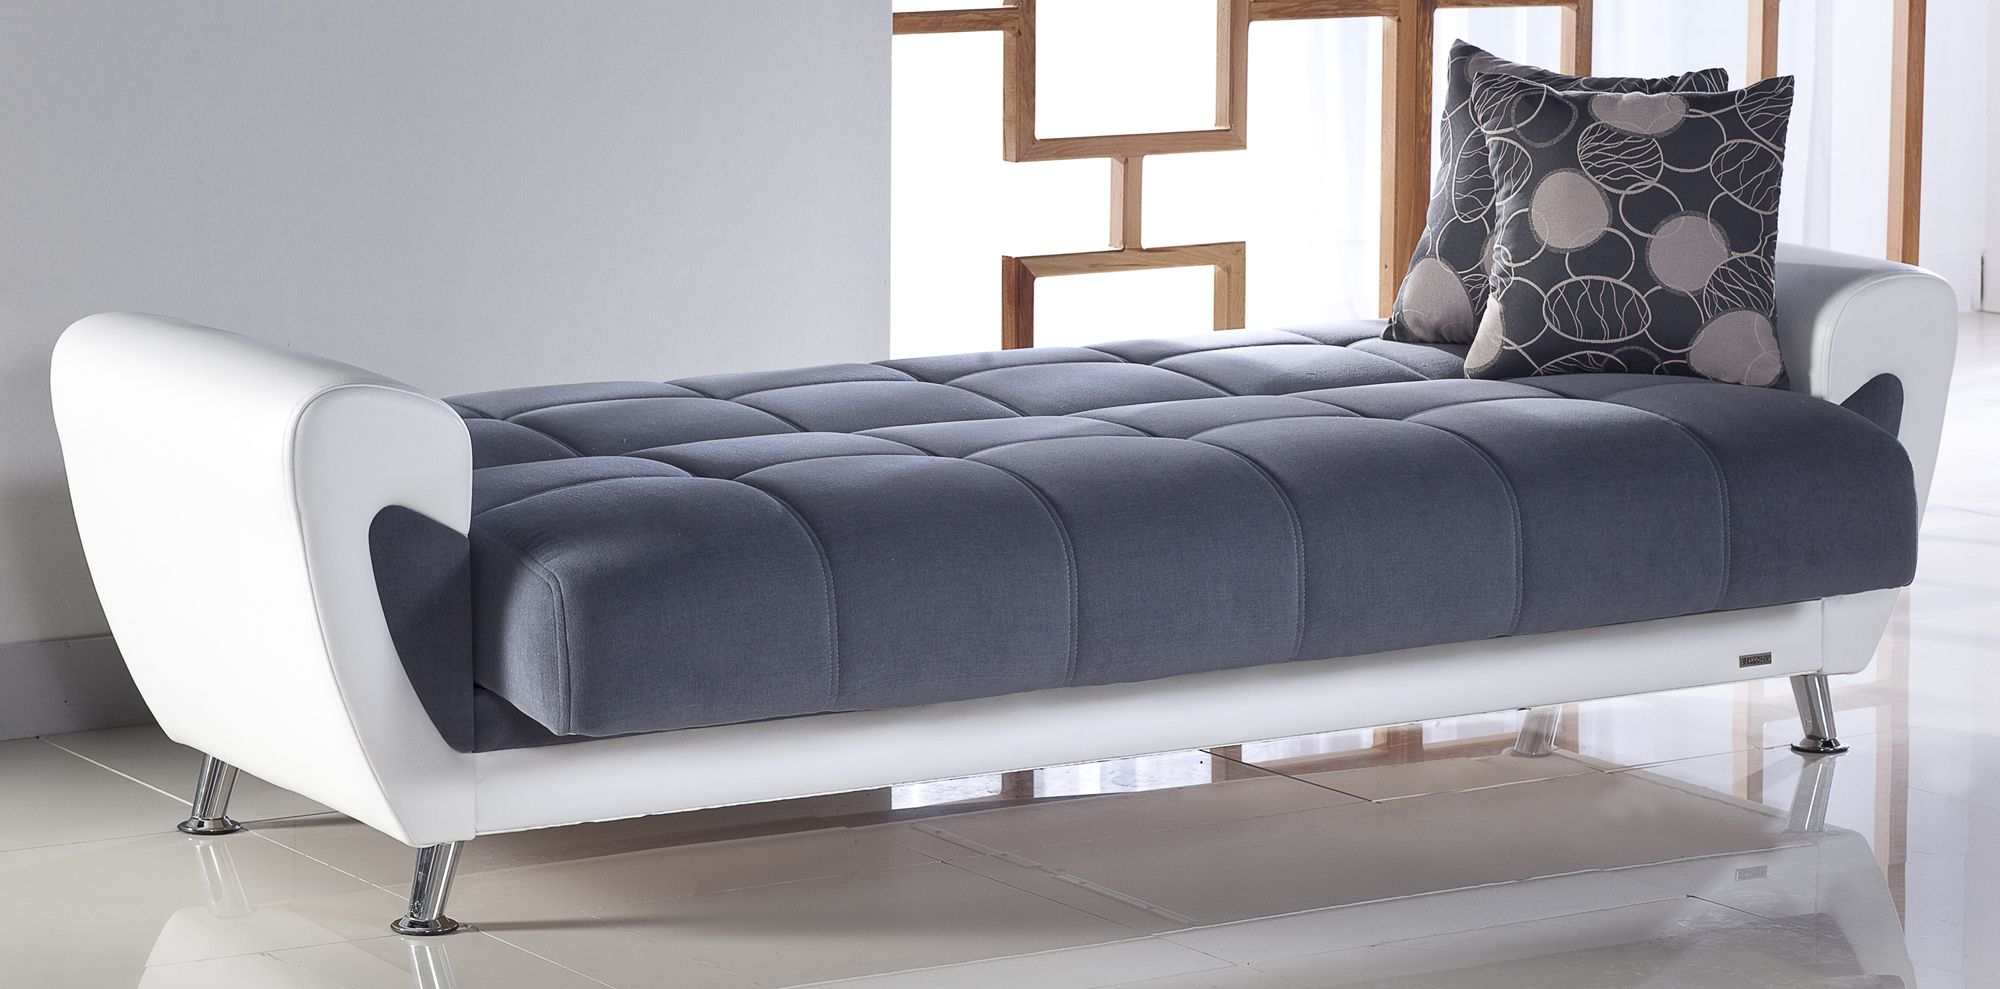 Duru Cozy Gray Convertible Sofa Bed By Sunset